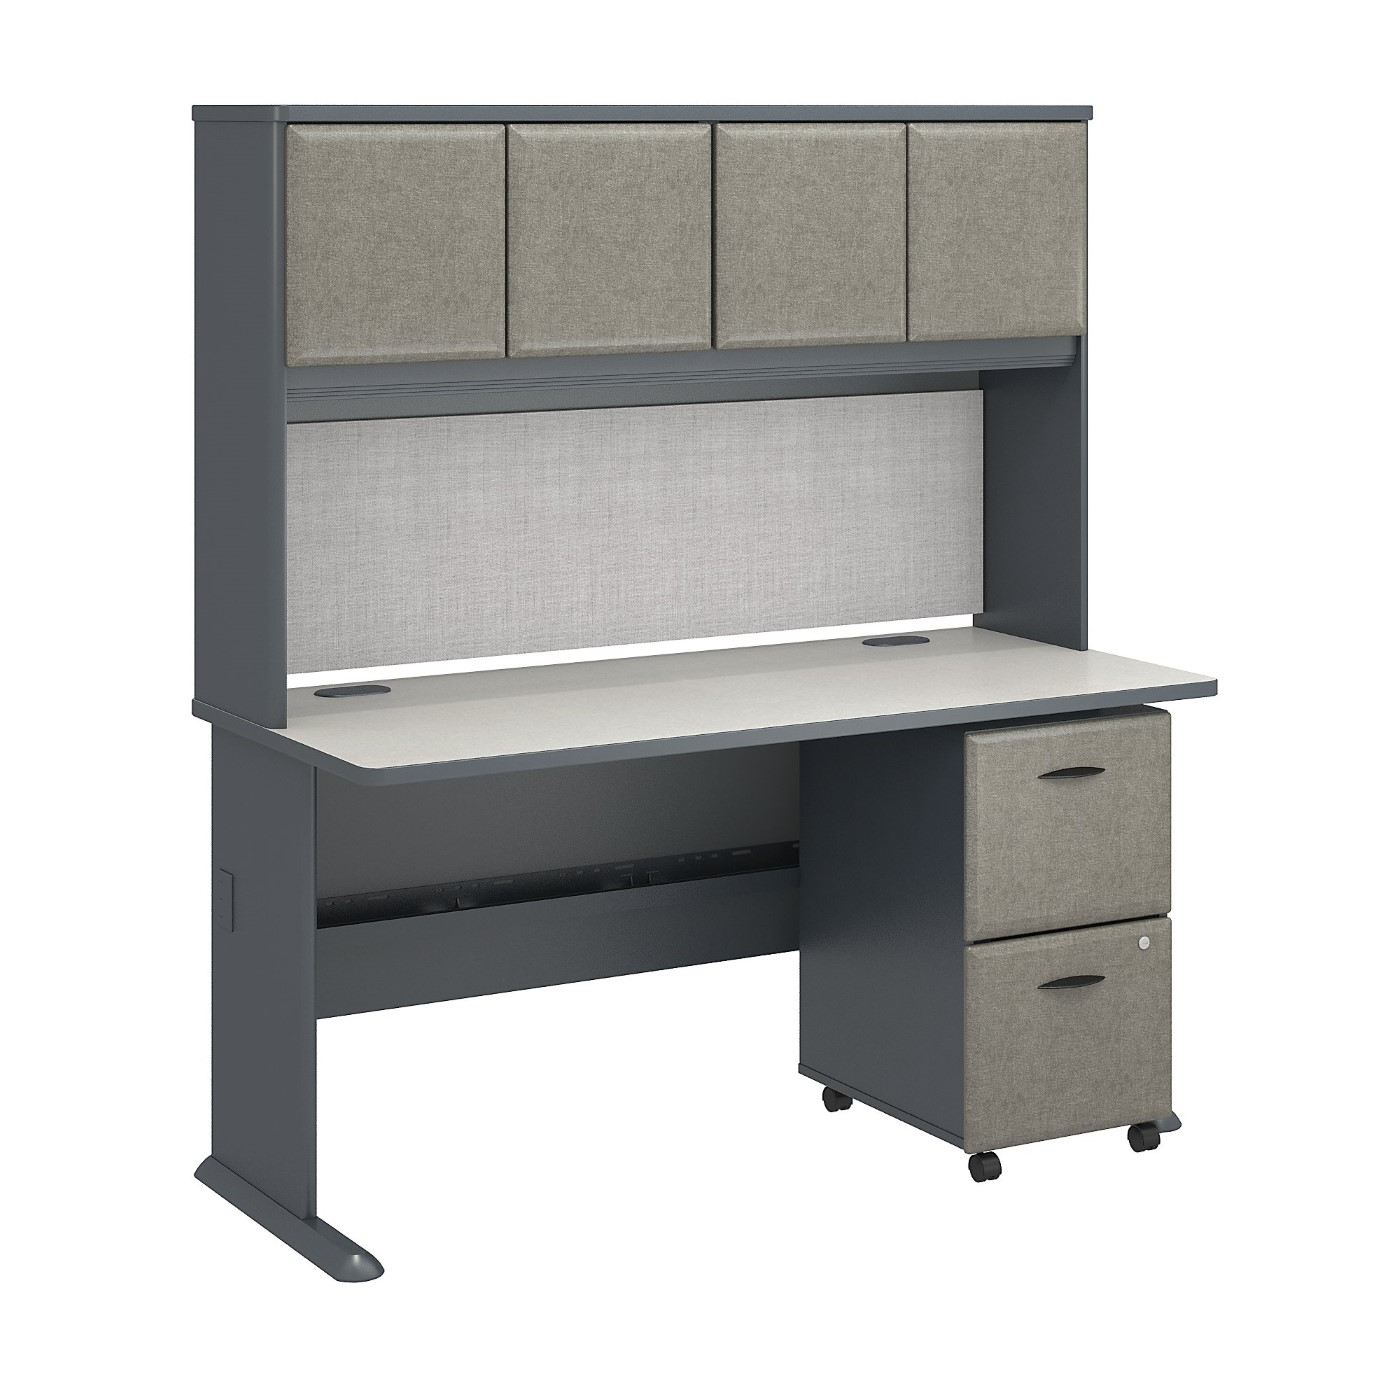 BUSH BUSINESS FURNITURE SERIES A 60W X 27D DESK WITH HUTCH AND 2 DRAWER MOBILE PEDESTAL. FREE SHIPPING